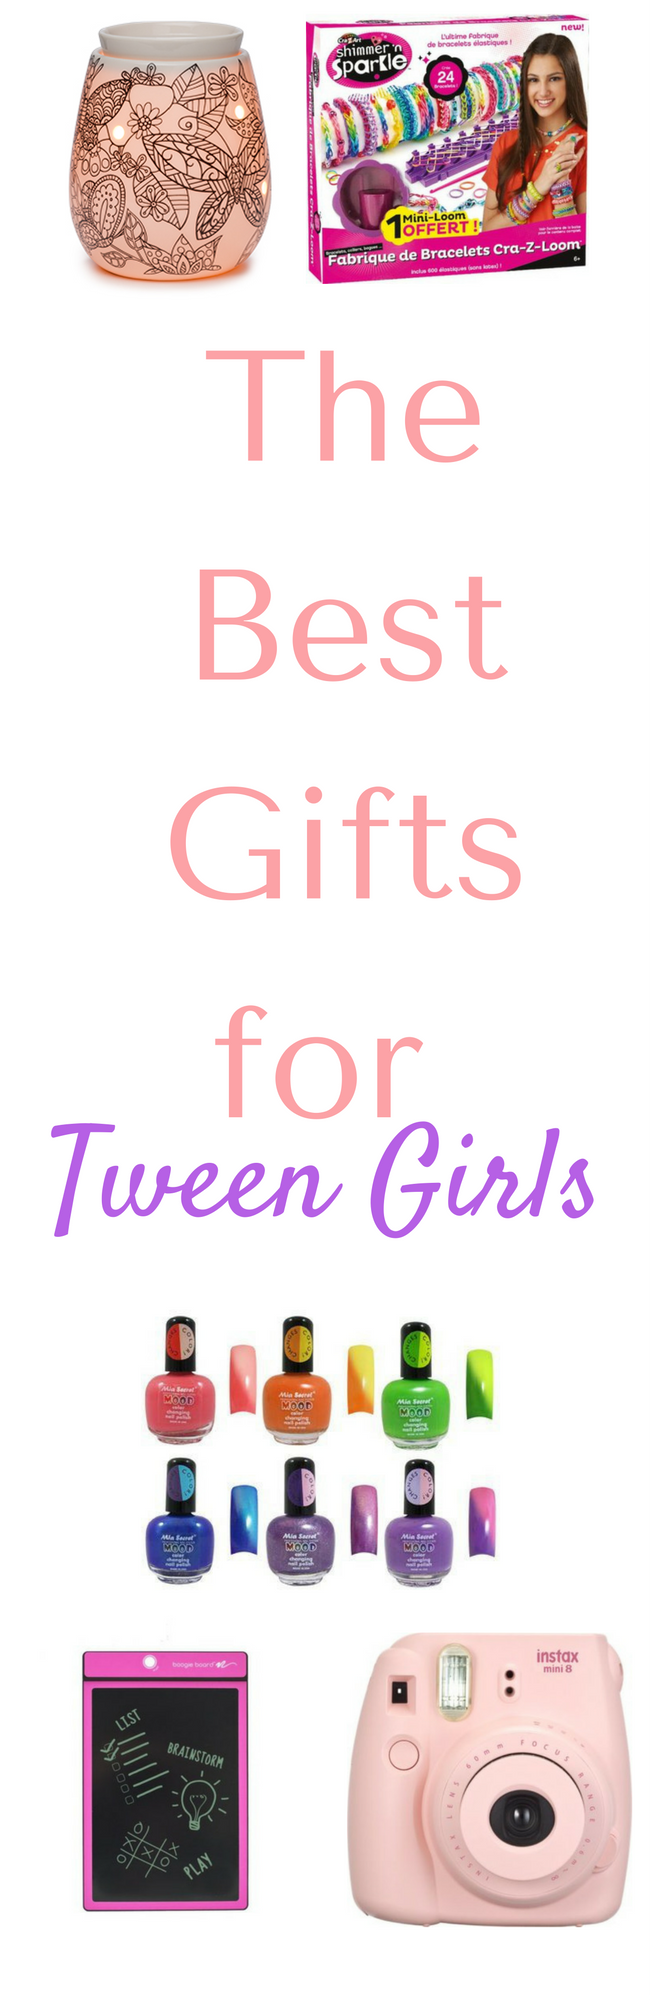 Awesome gift ideas for tween girls - these gift ideas for girls who aren't quite teenagers will be a huge hit this Christmas!